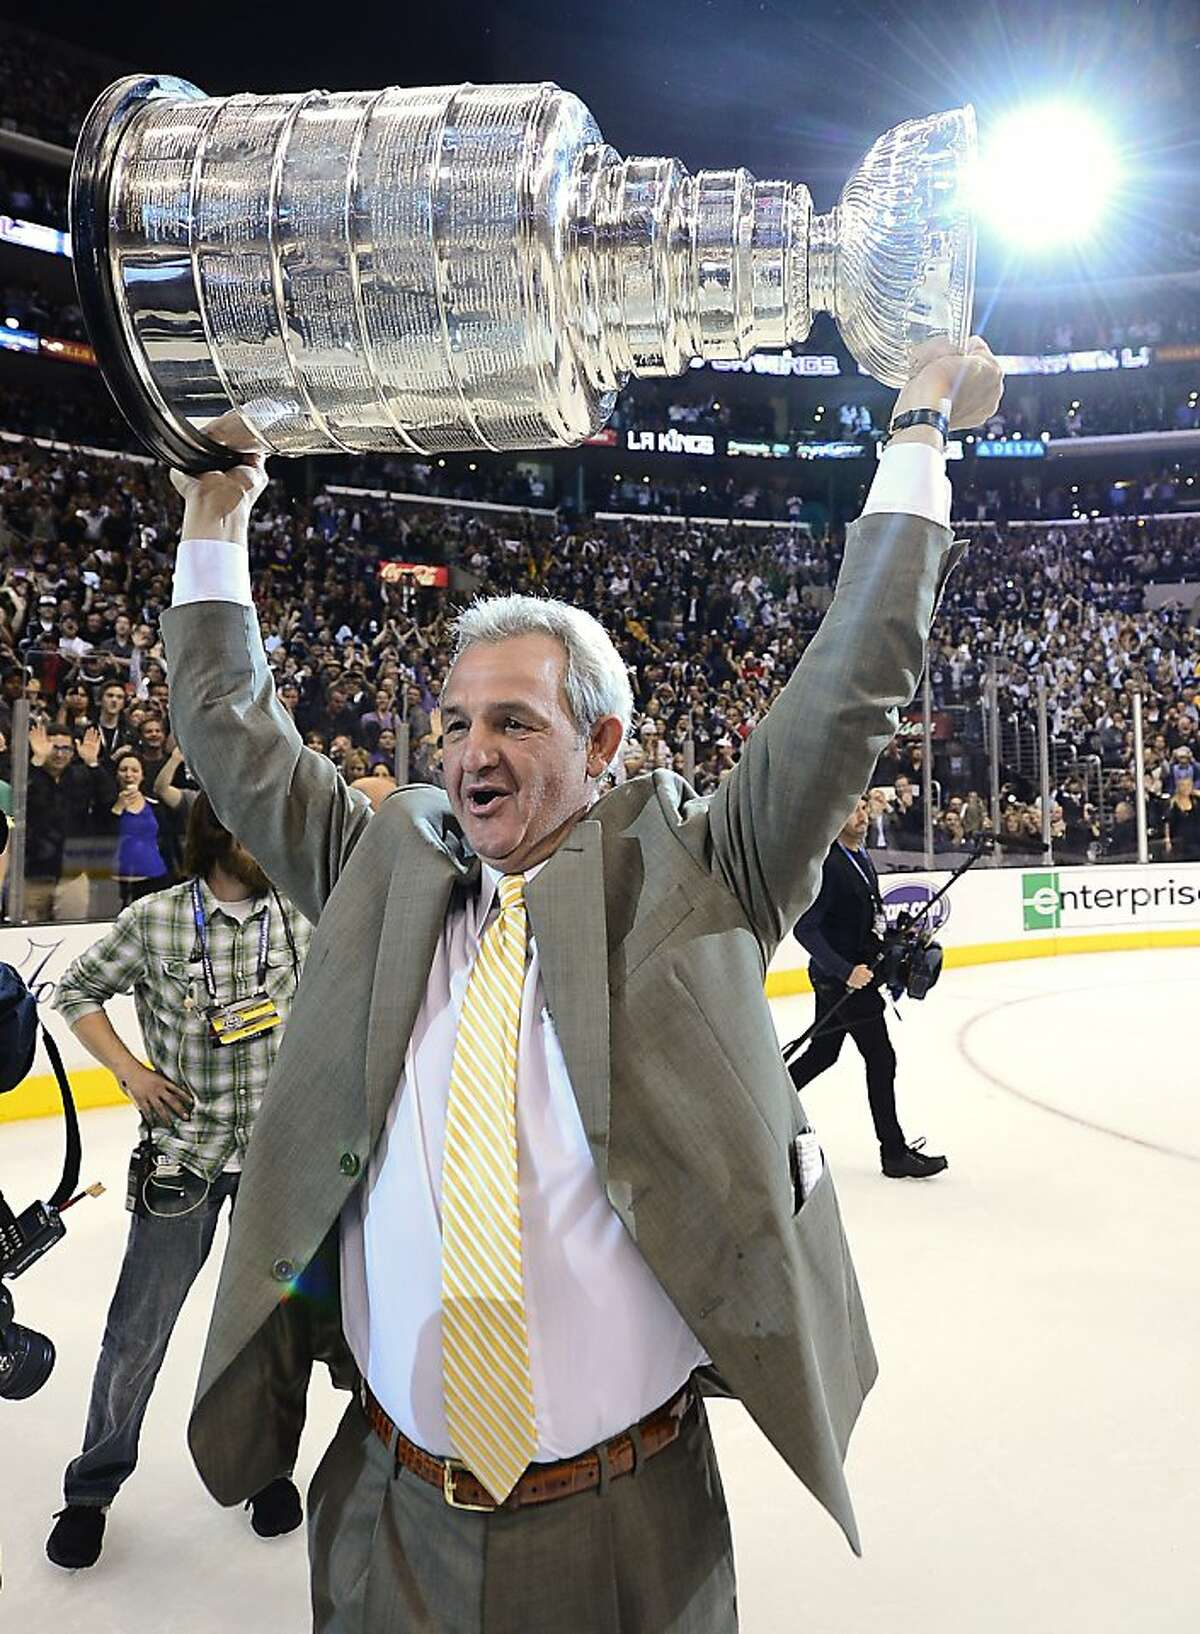 Los Angeles Kings coach Darryl Sutter hoists the Stanley Cup after beating the New Jersey Devils 6-1 during Game 6 of the NHL hockey Stanley Cup finals, Monday, June 11, 2012, in Los Angeles. (AP Photo/Mark J. Terrill)